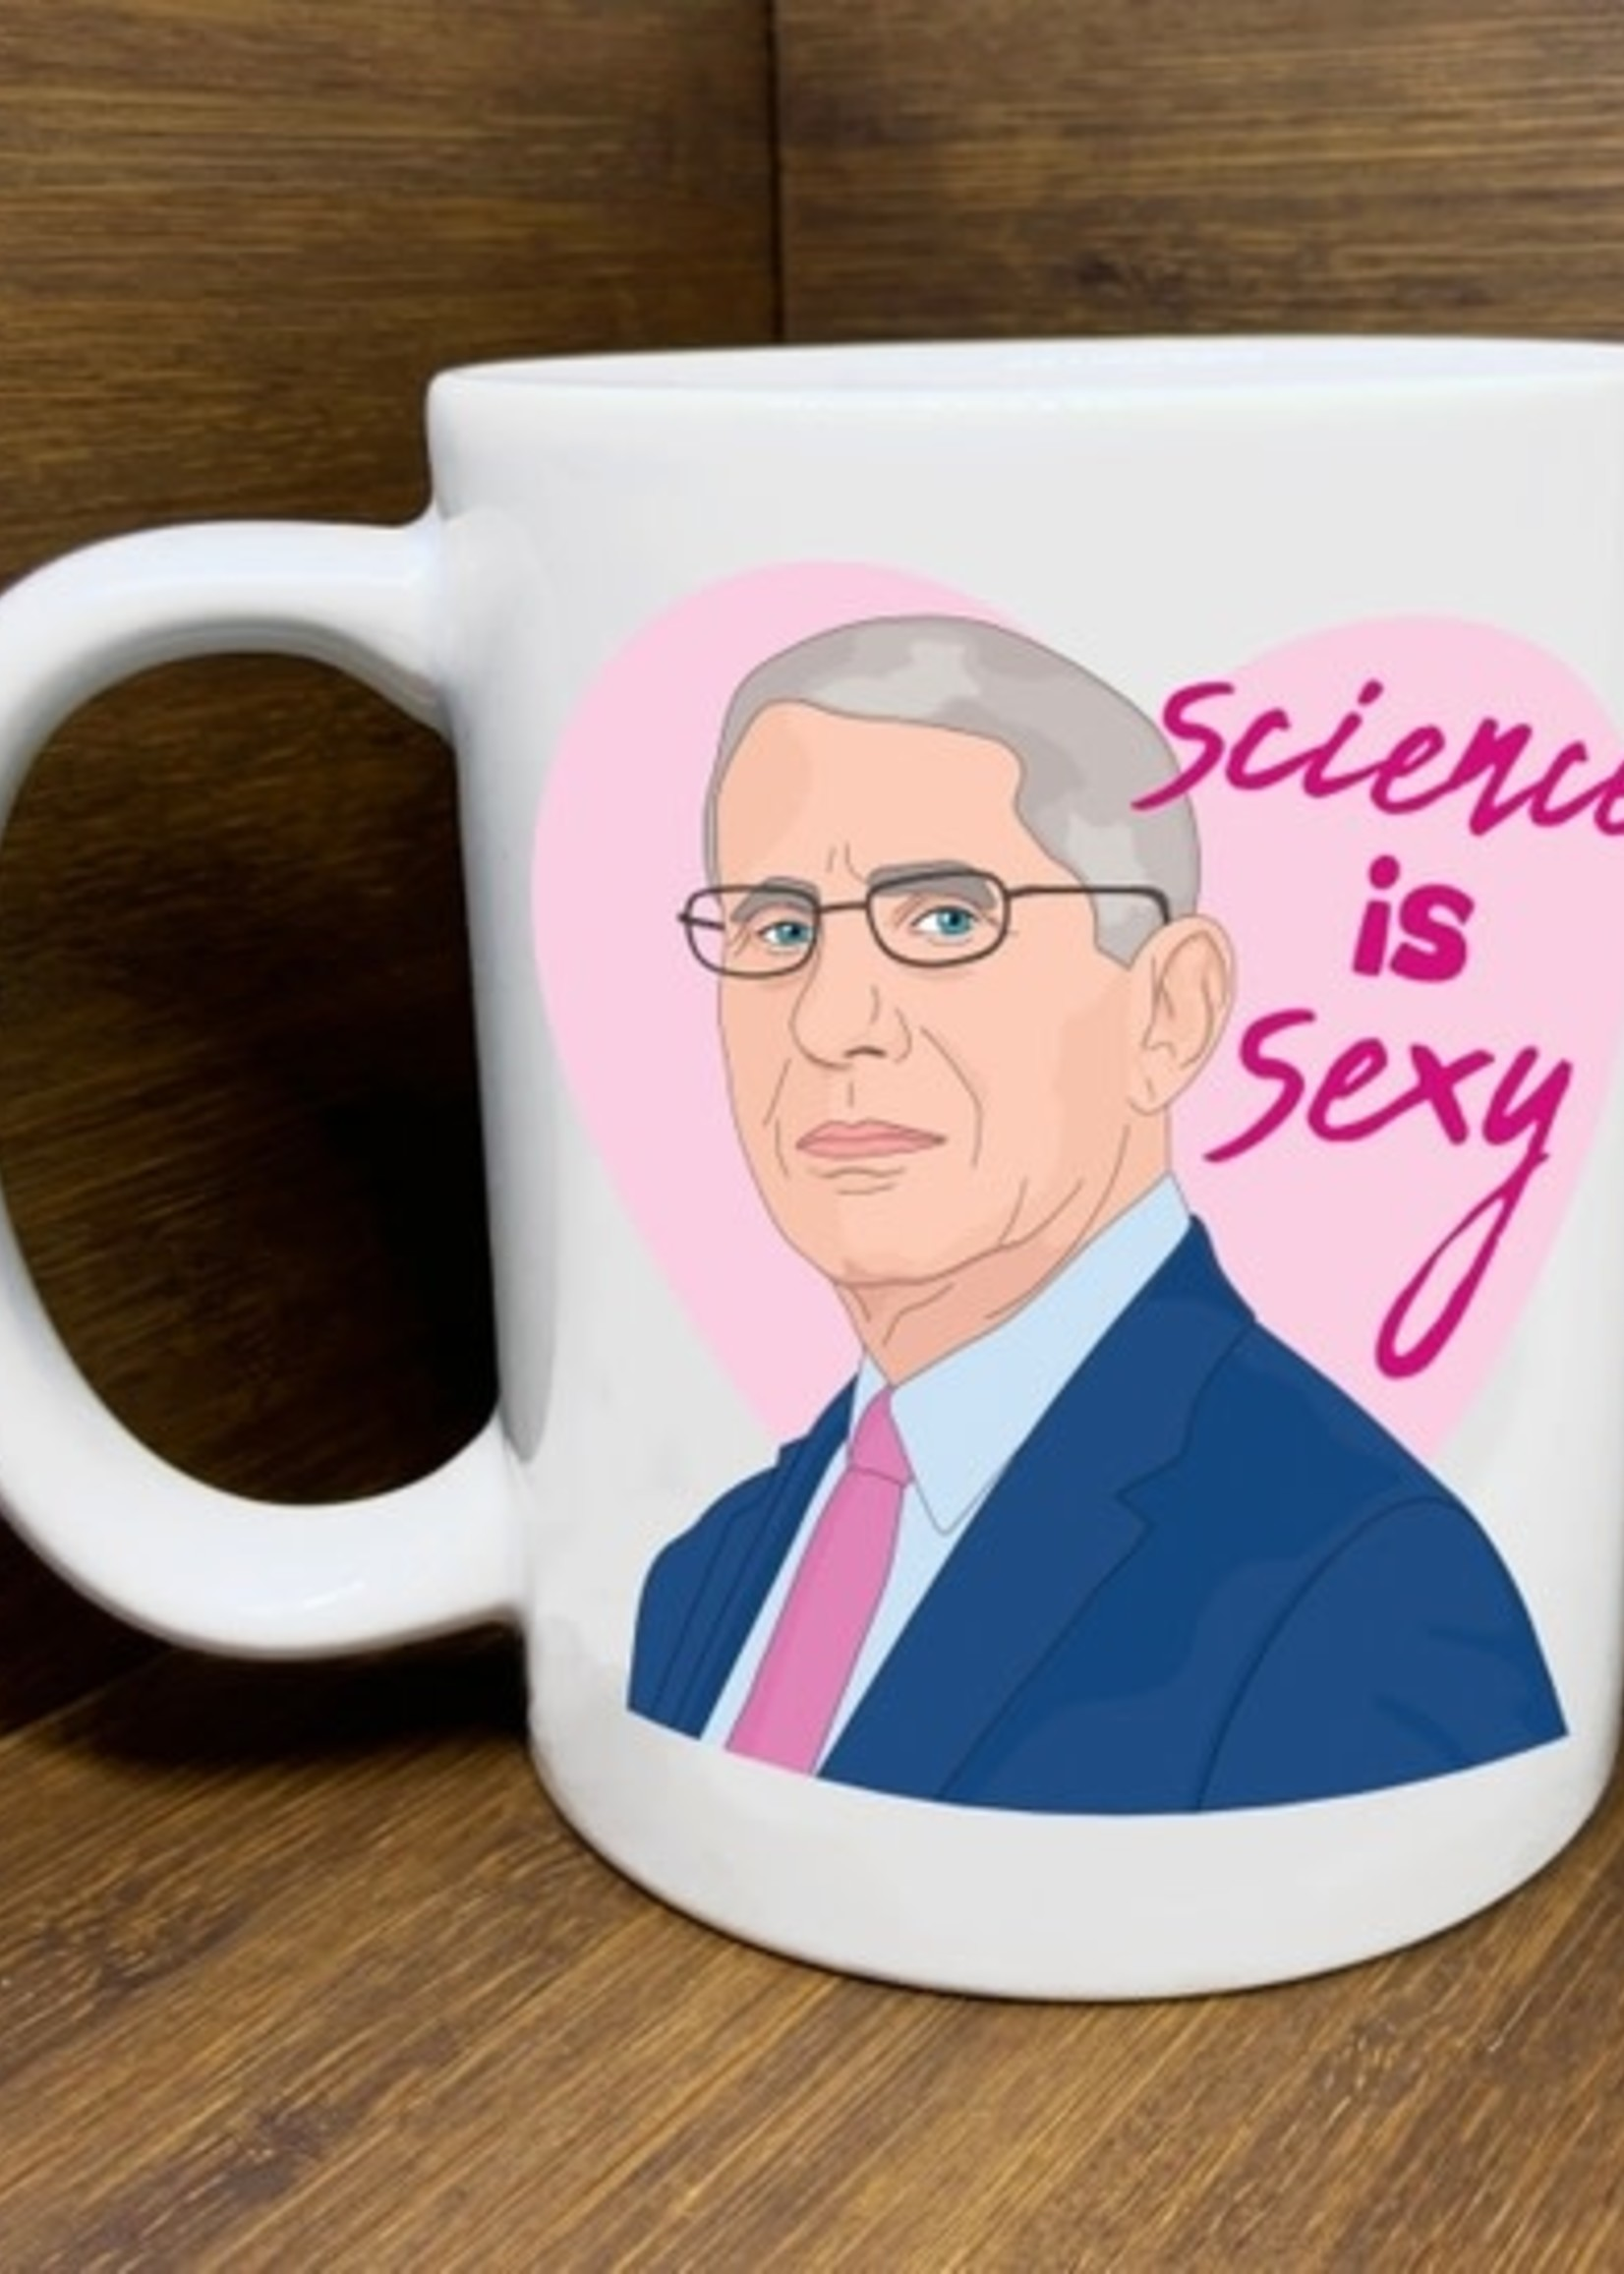 CITIZEN RUTH CITIZEN RUTH DR. FAUCI SCIENCE IS SEXY MUG